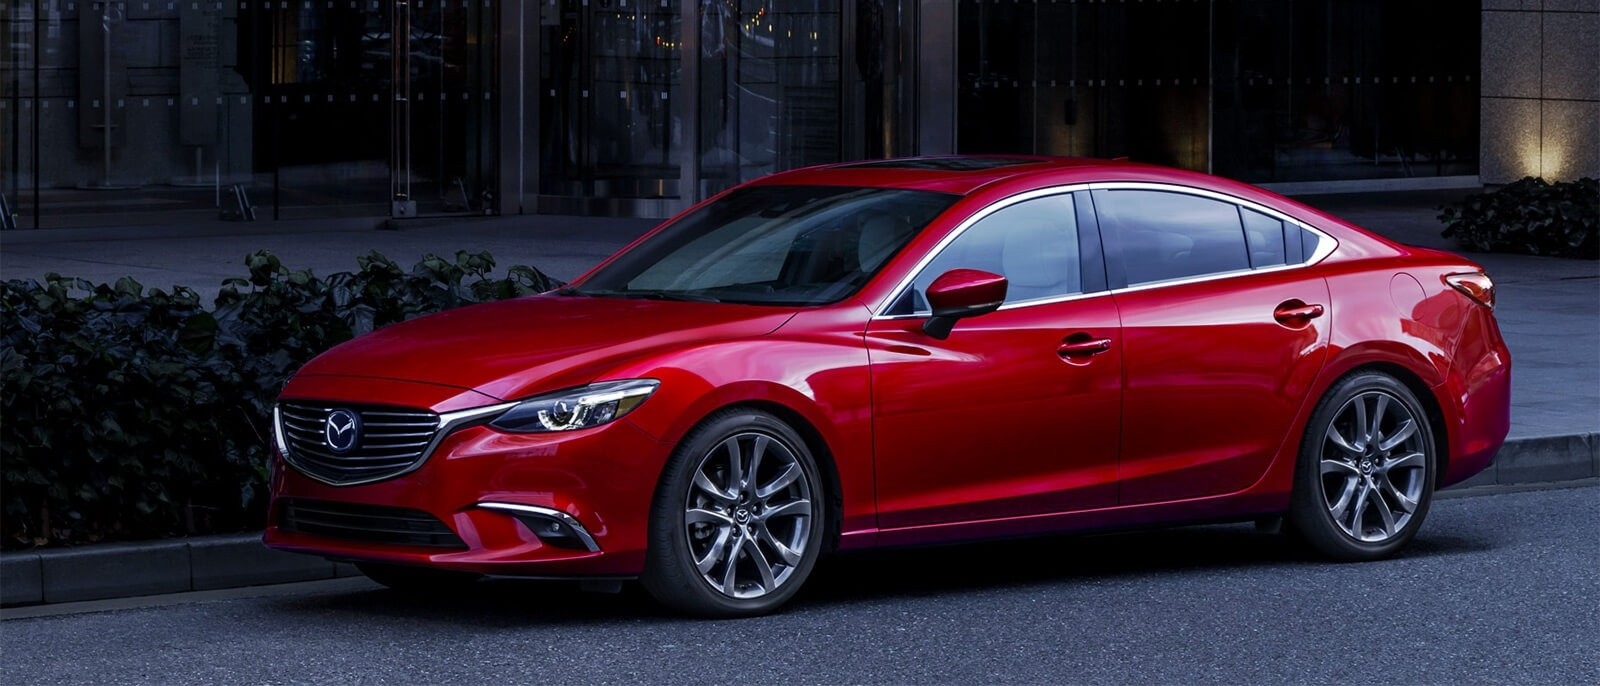 2017 Mazda6 Exterior Parked